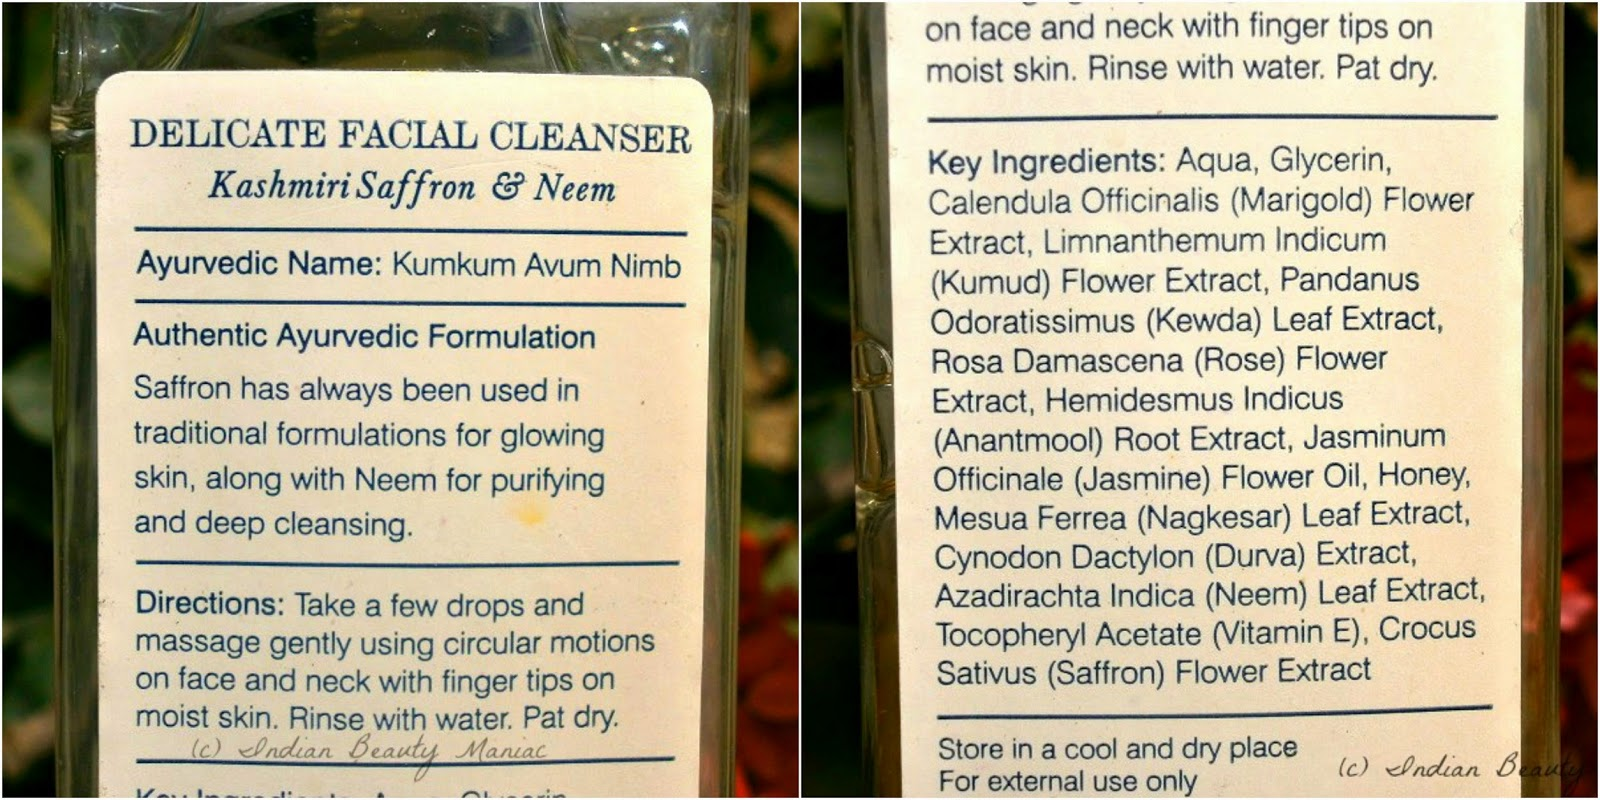 Forest Essentials Delicate Facial Cleanser Kashmiri Saffron & Neem, review, chemical free face wash, gentle cleanser for dry skin, Paraben free cleanser, Ayurvedic cleanser, Saffron for skin care, Neem for skin care, Traditional Indian skincare